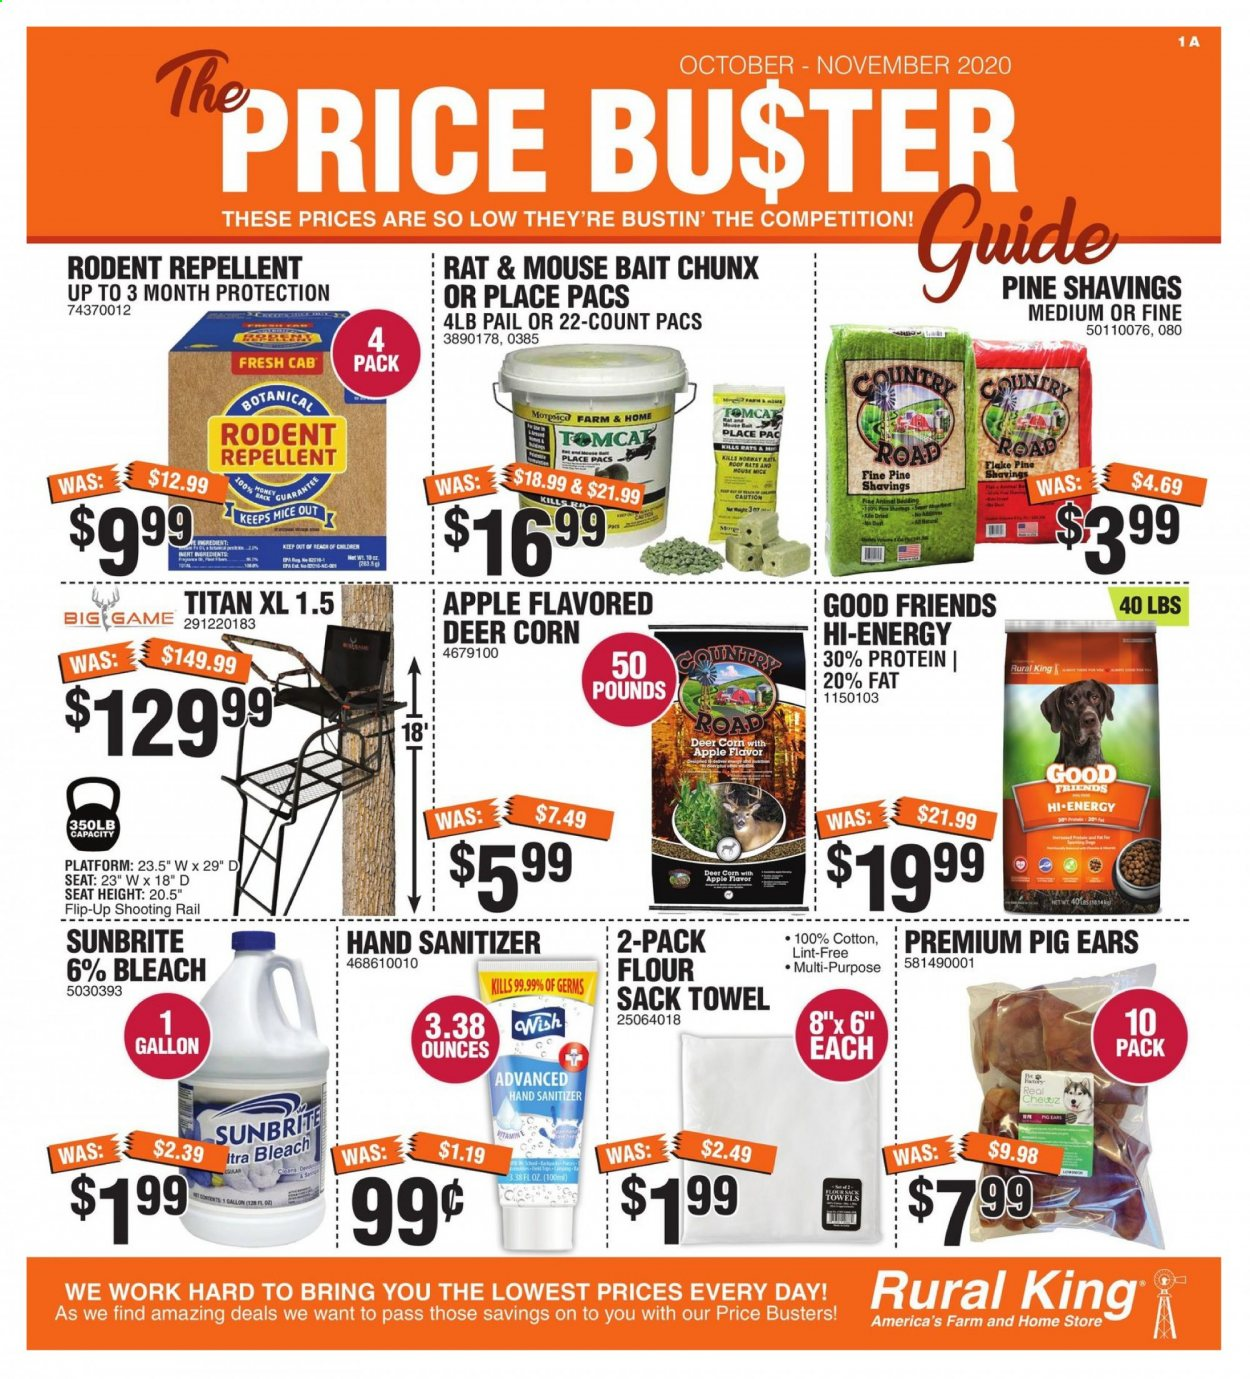 Rural King Flyer - 09.27.2020 - 11.28.2020 - Sales products - apples, bedding, corn, cotton, deer, fa, flour, fragrance, mouse, rail, repellent, tomcat, towel, honey, pine, protein, game, bleach, hand sanitizer, apple, 100% cotton. Page 1.